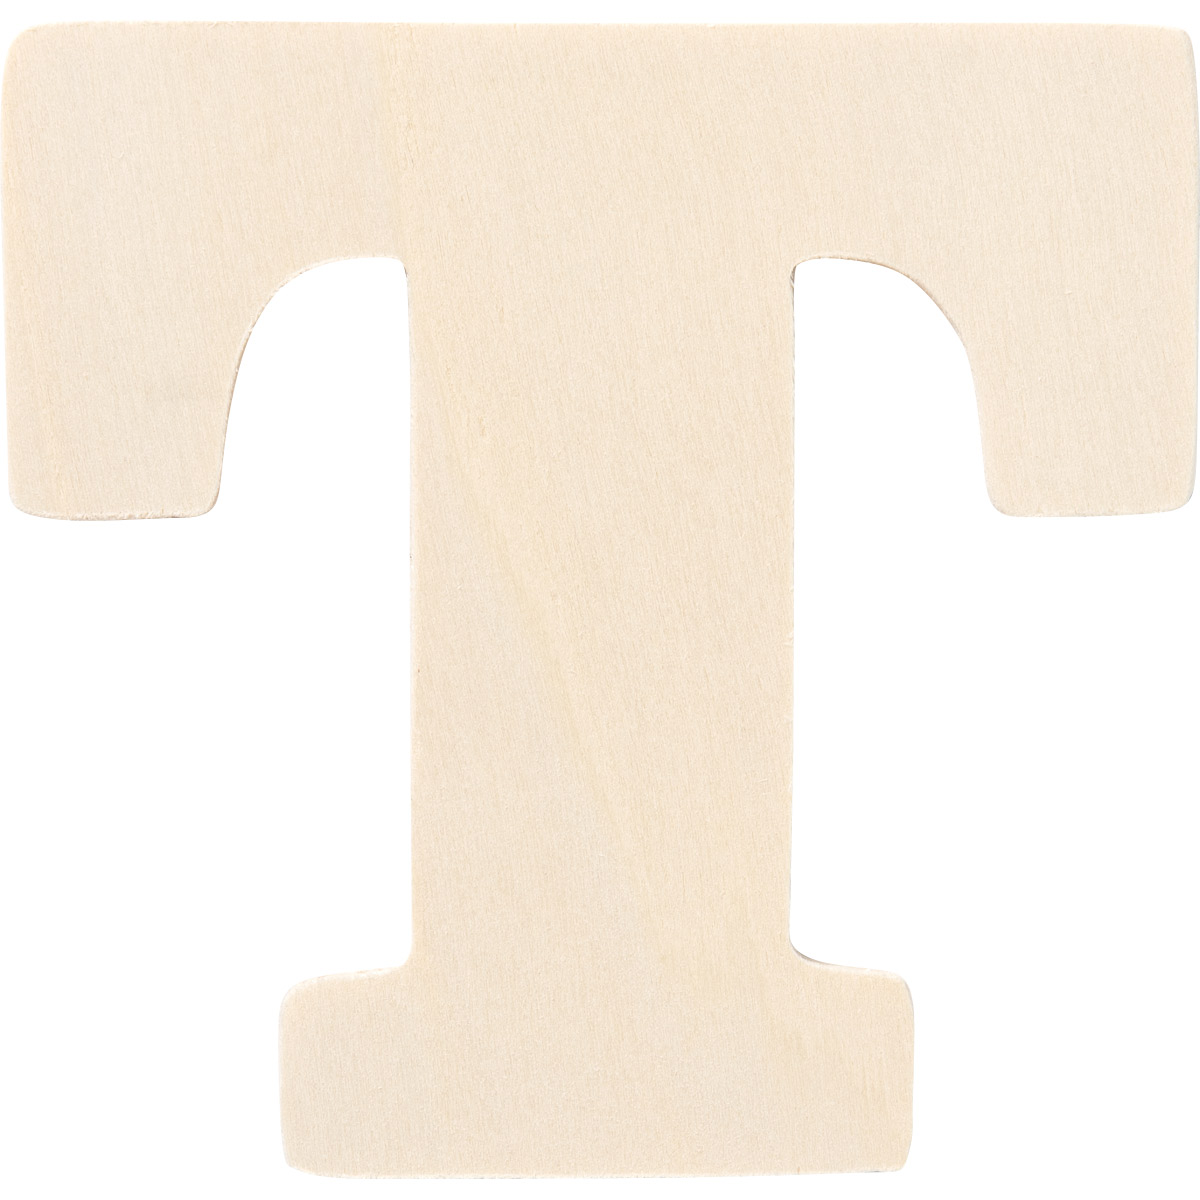 Plaid ® Painter's Palette™ Wood Letter - T. 4 inch